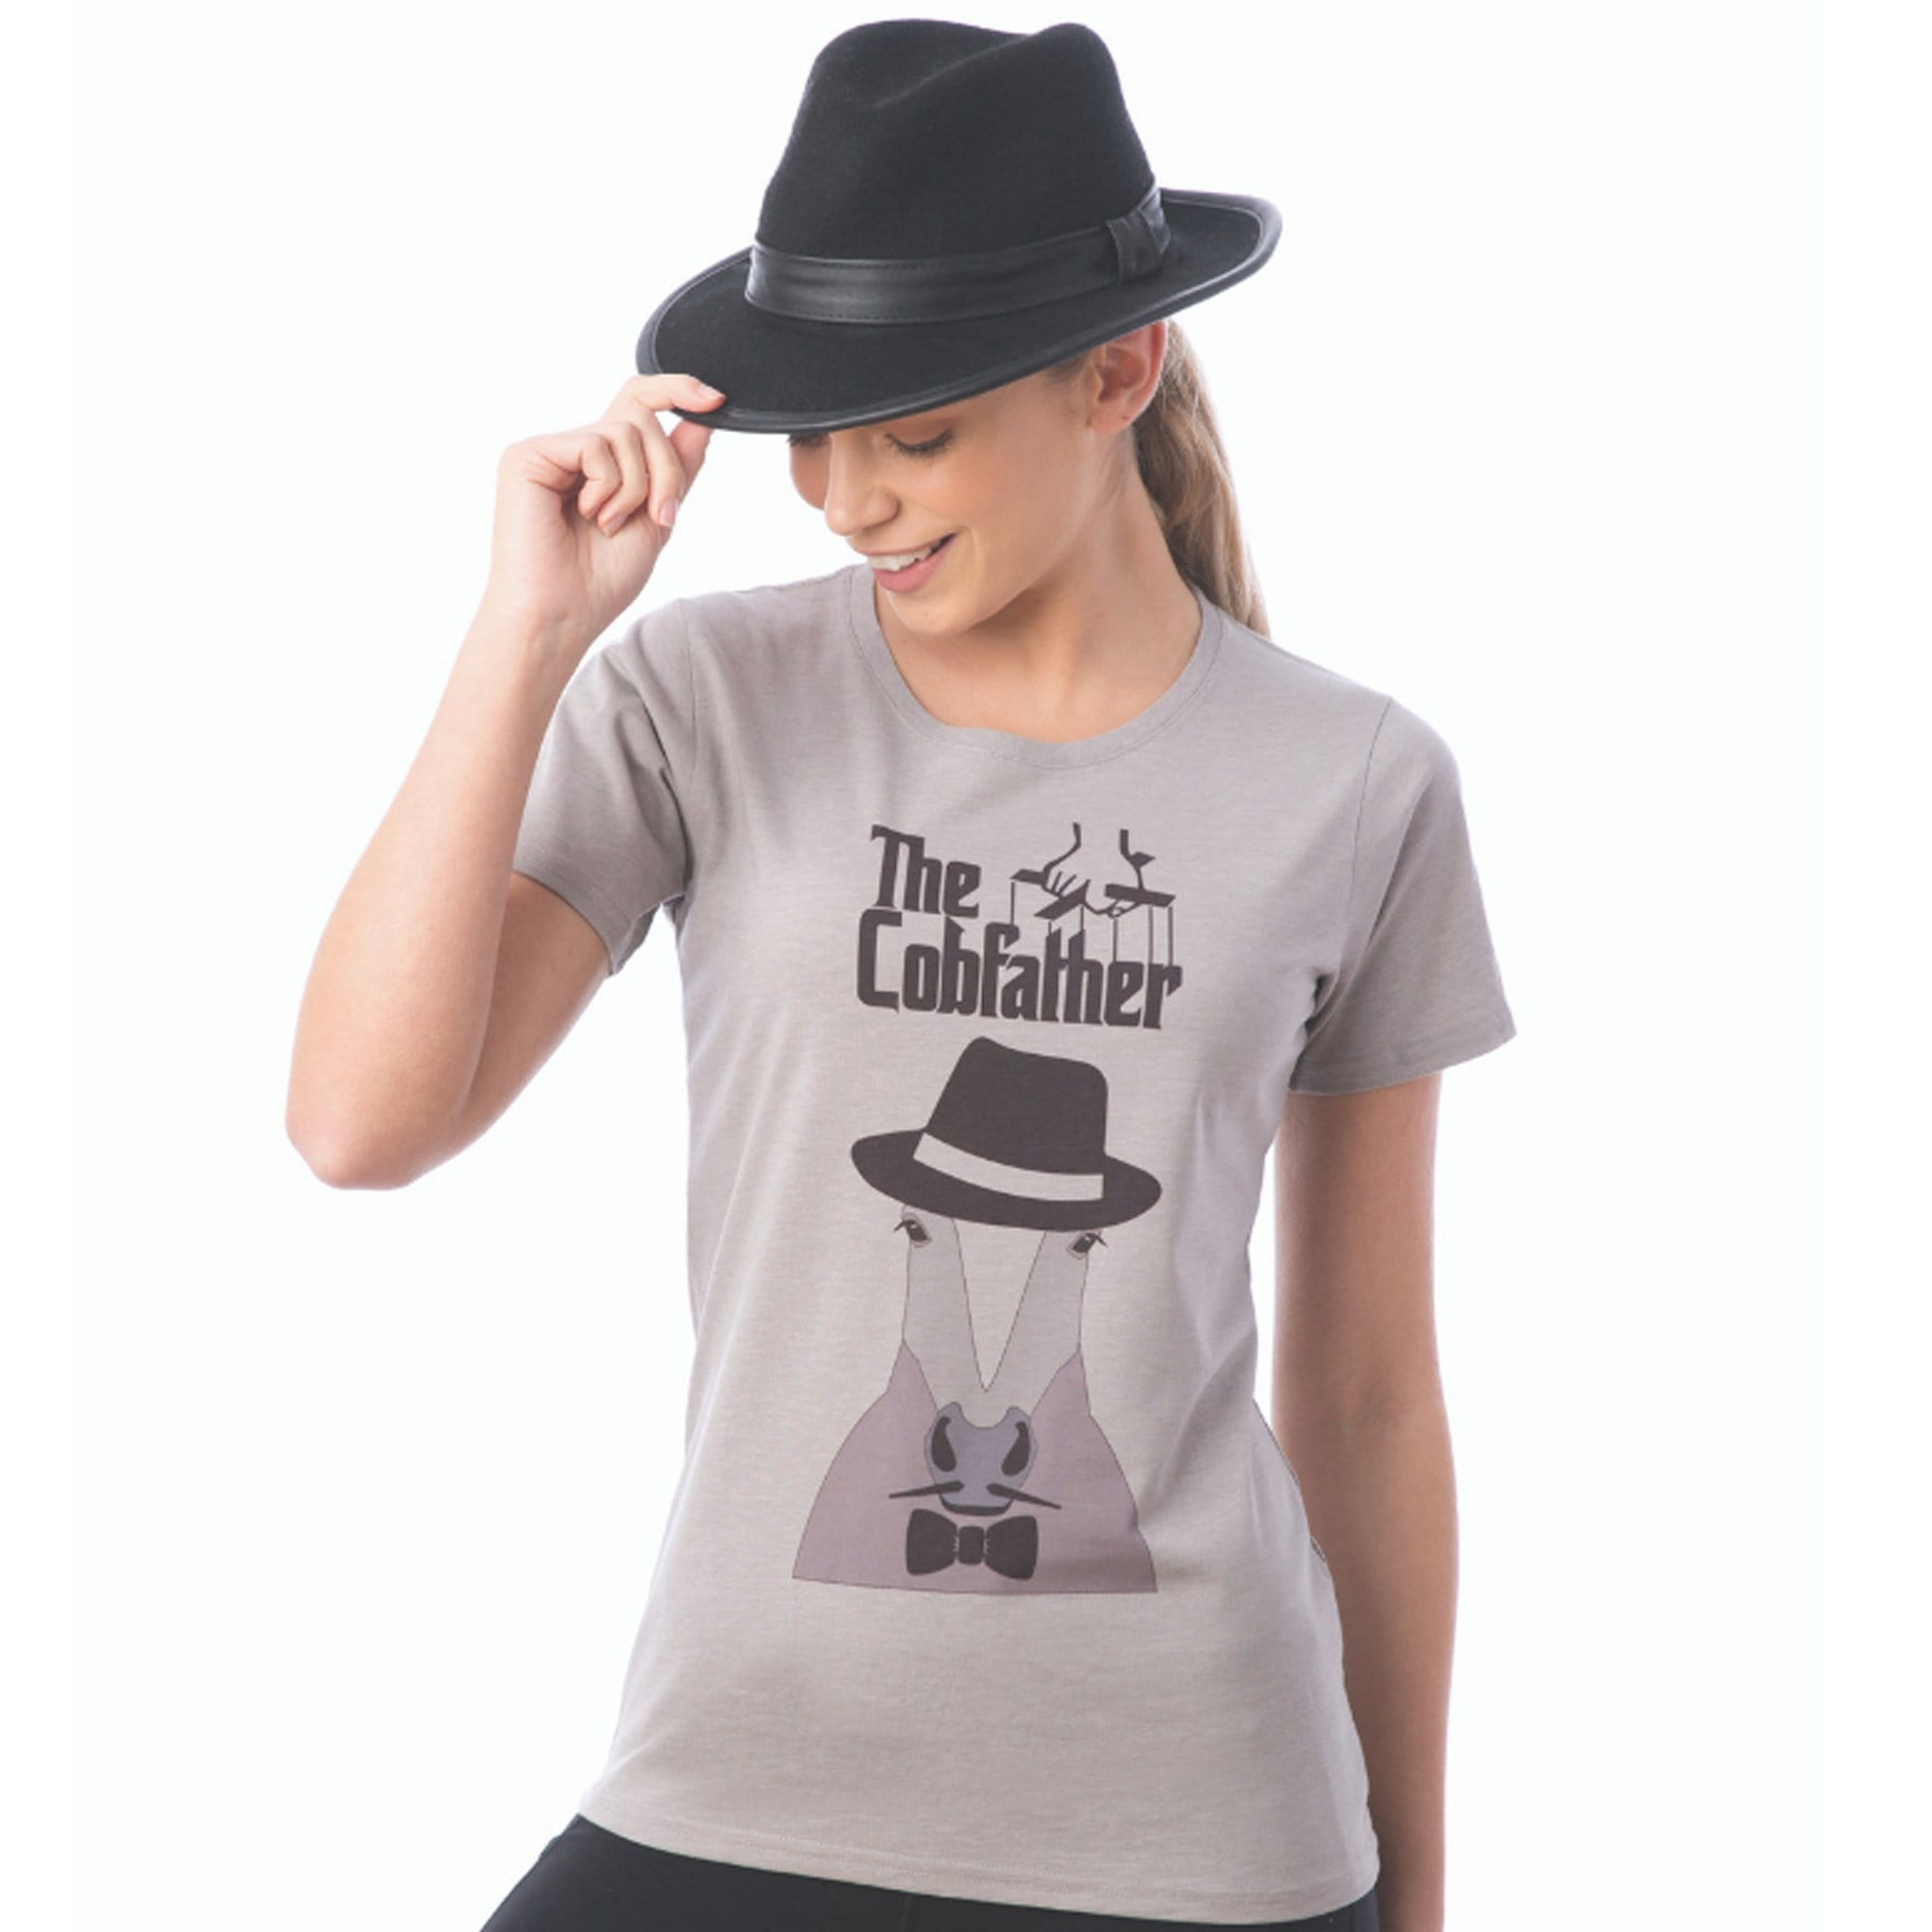 Equetech The Cobfather Novelty Tee COB.